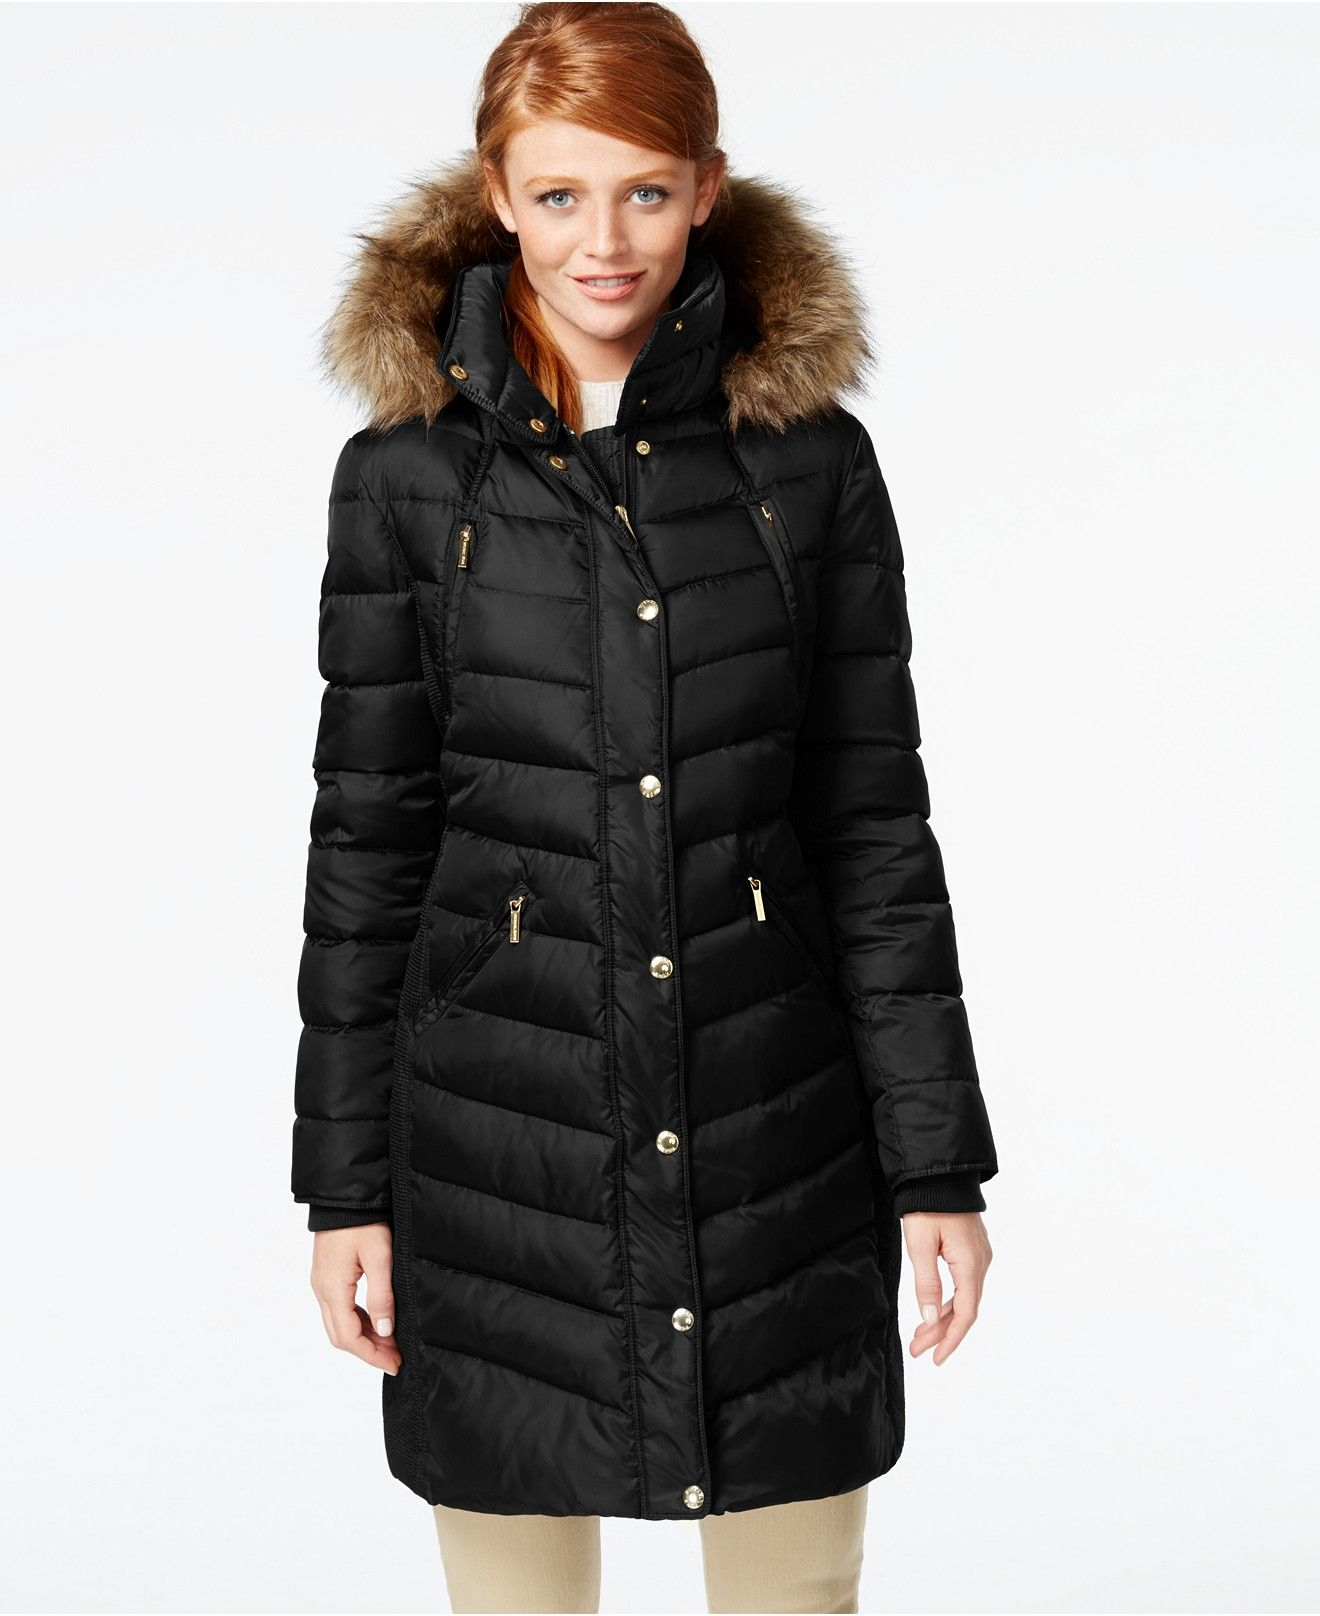 b7d5c8c5213 MICHAEL Michael Kors Hooded Faux-Fur-Trim Down Puffer Coat - Coats - Women  - Macy s